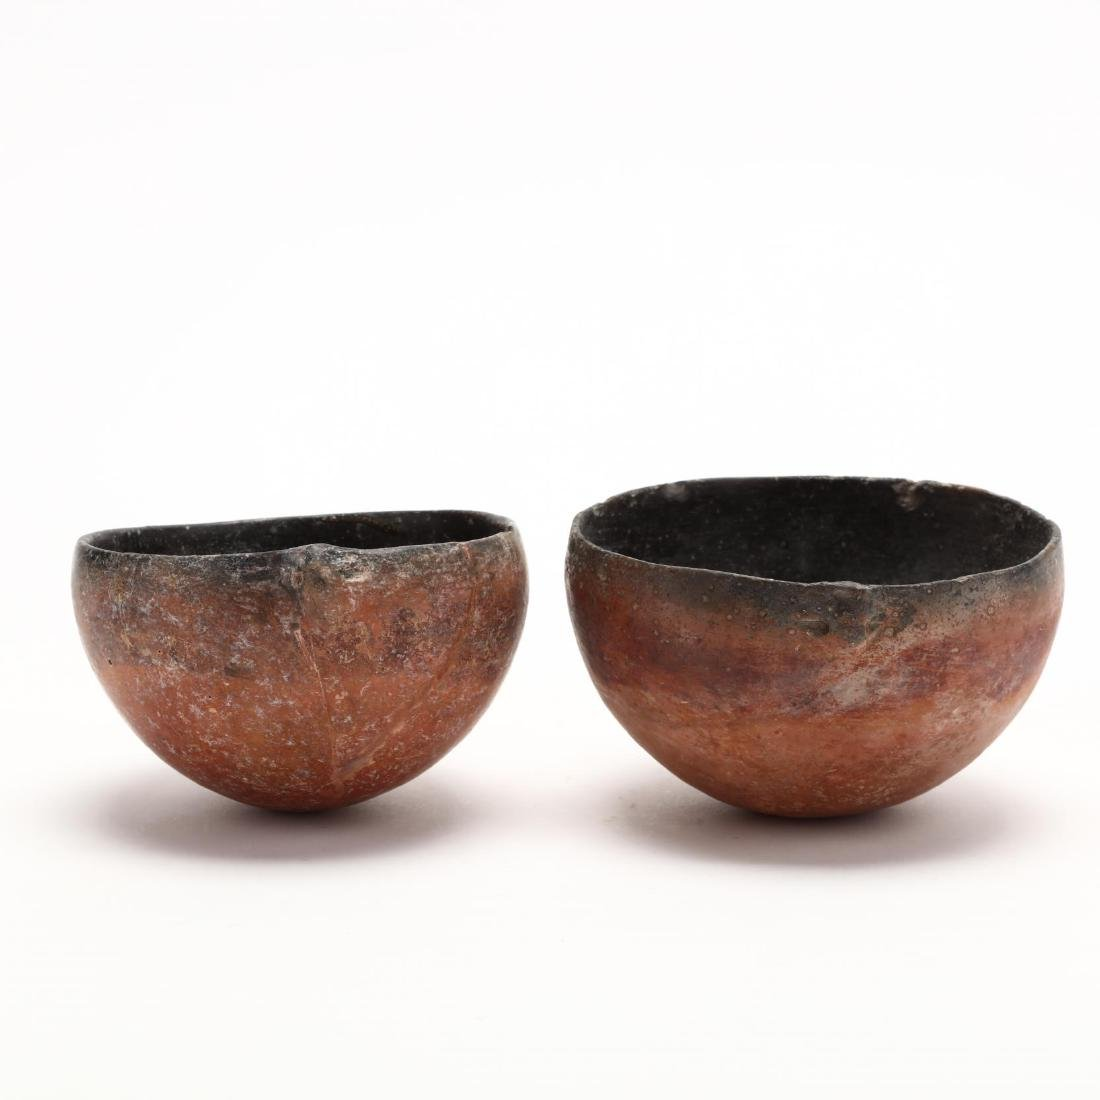 Two Cypriot Bronze Age Polished Red Ware Bowls - 5